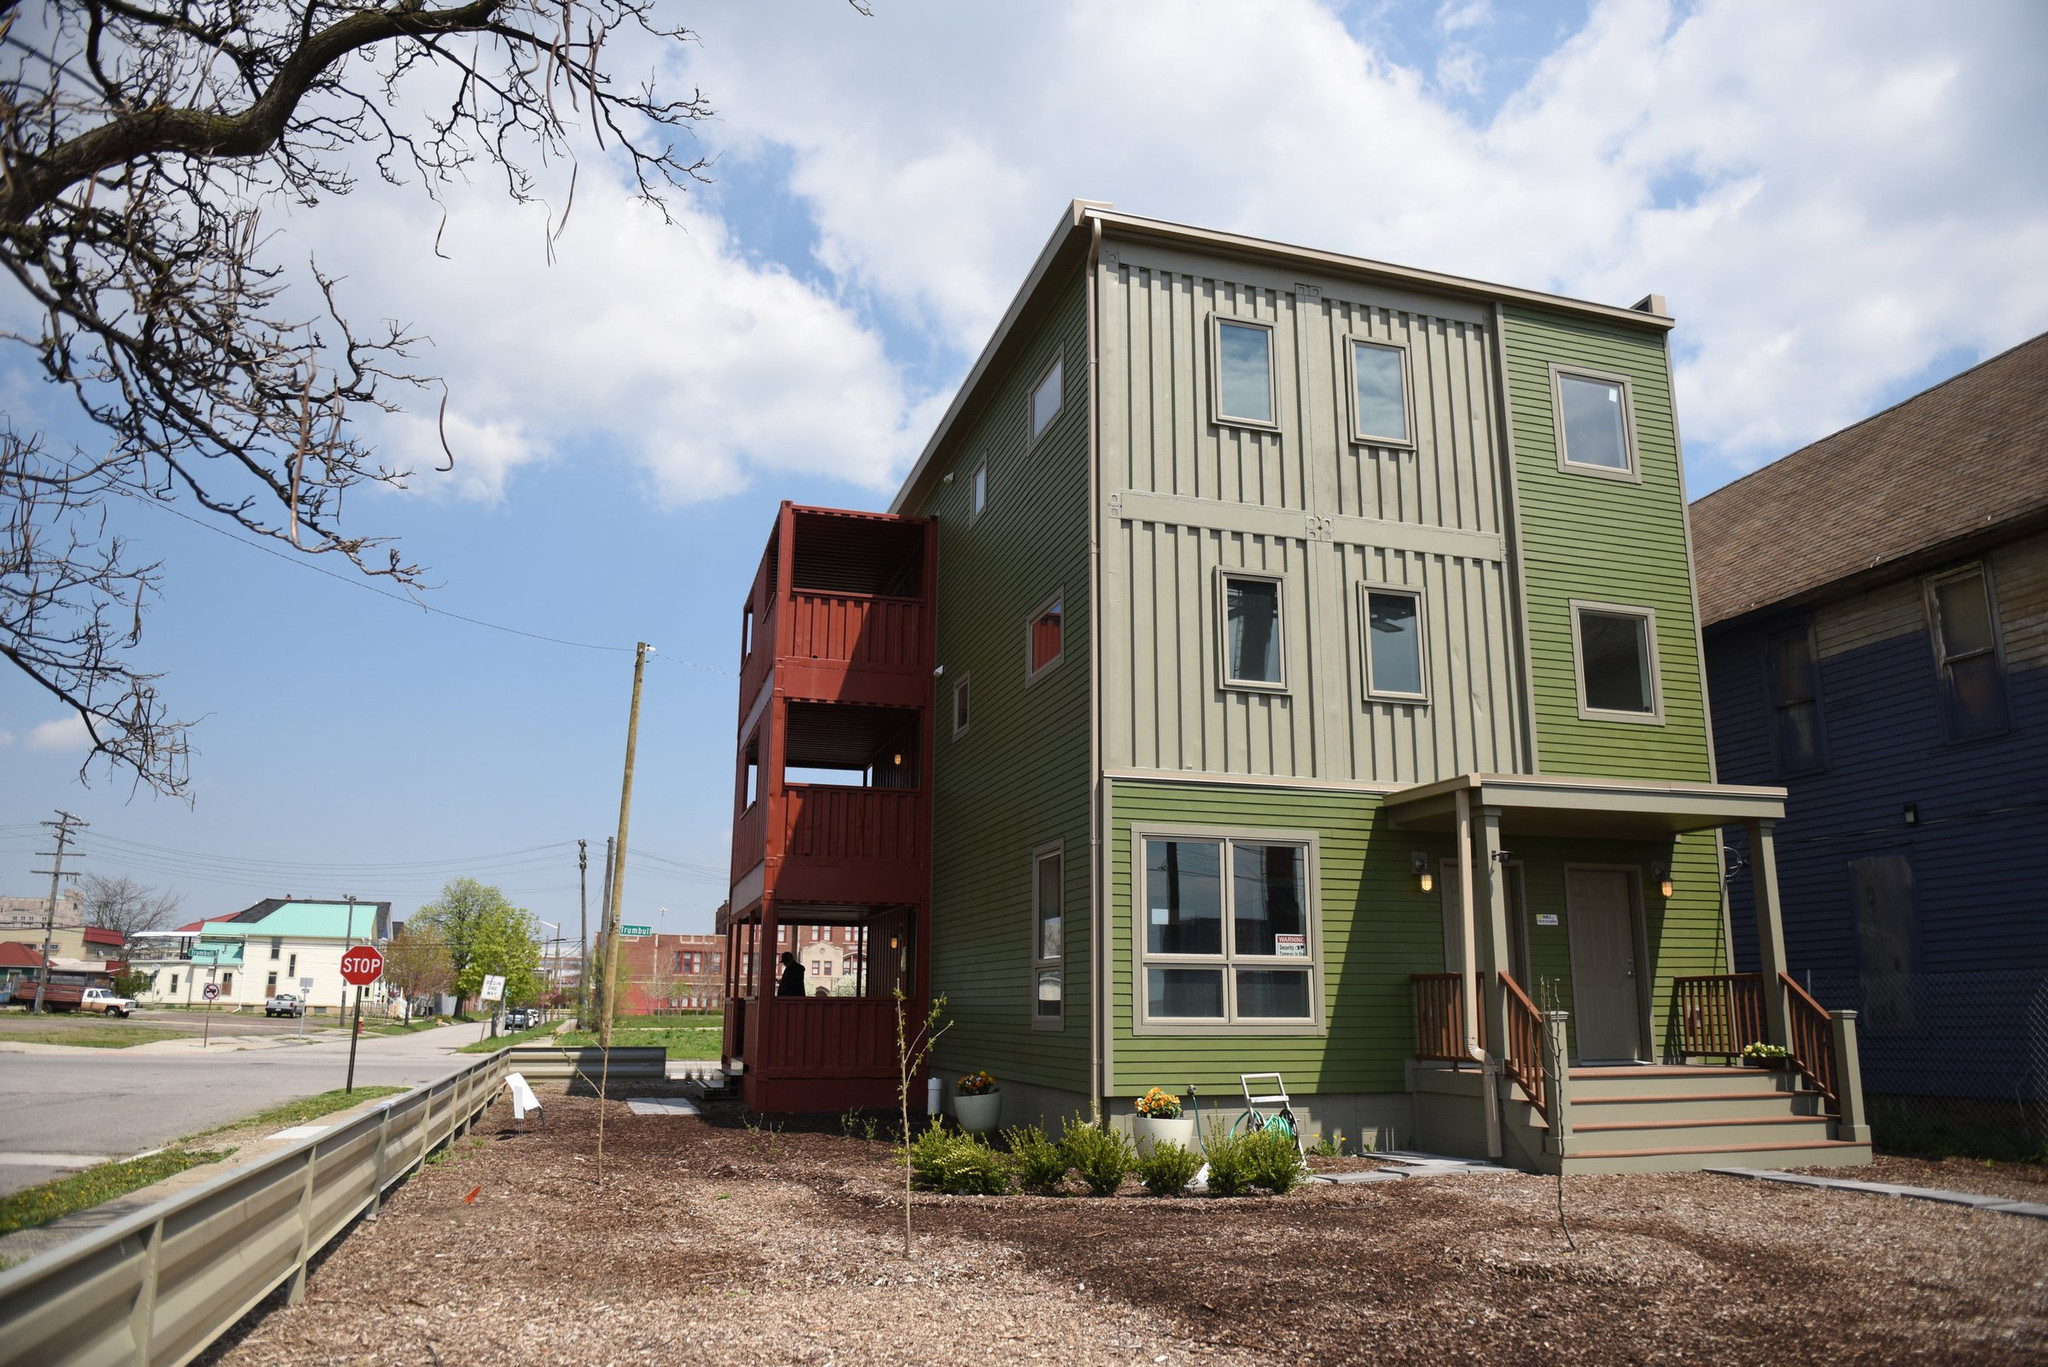 Detroit 39 s container homes chicago tribune - Shipping container homes chicago ...